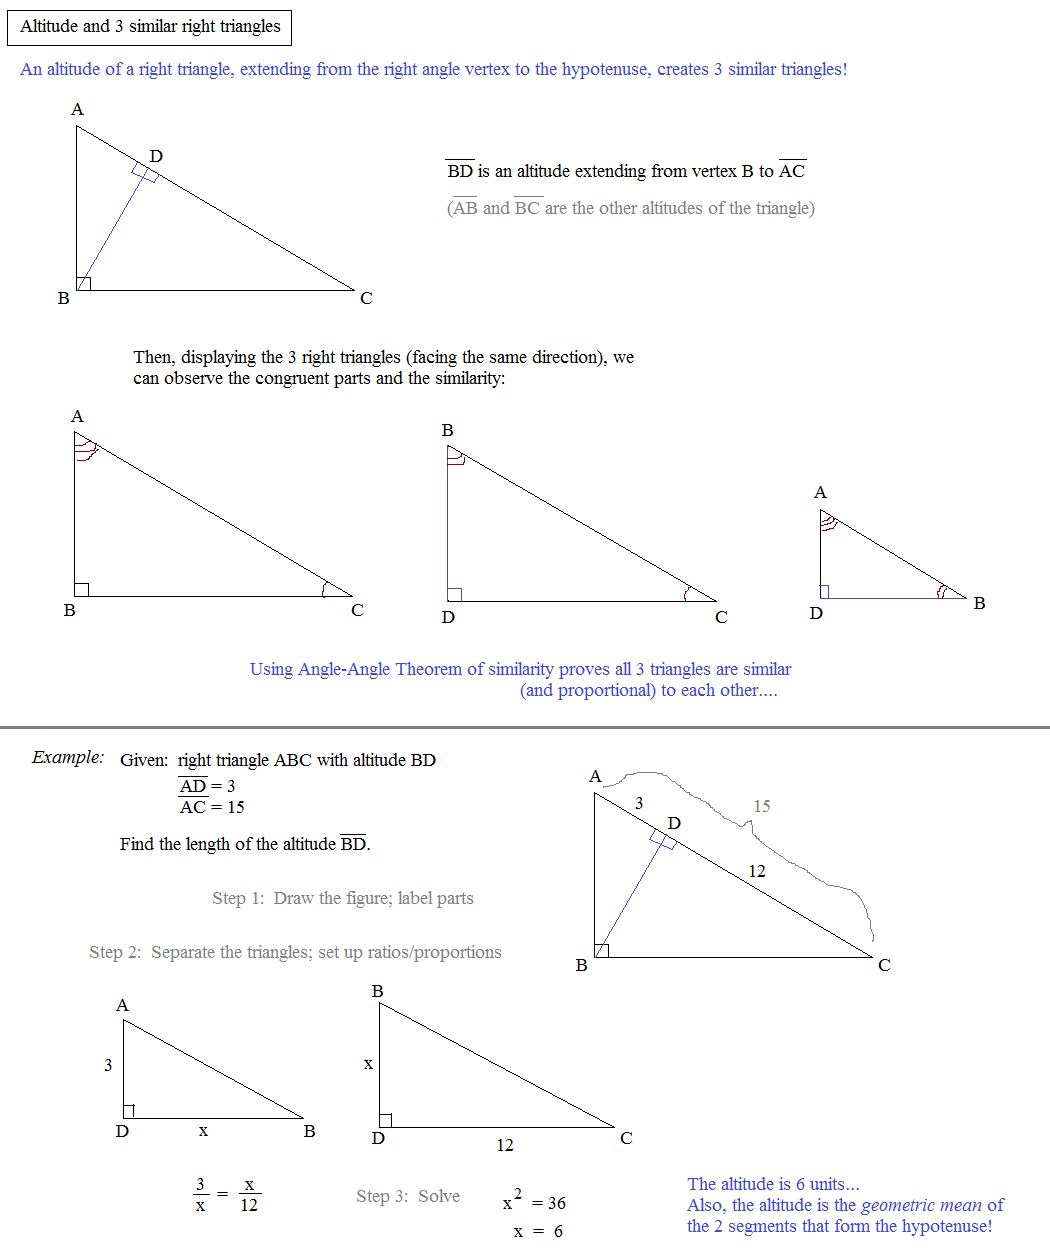 worksheet Similar Triangles And Proportions Worksheet math plane similar triangles ratios altitude and right triangles